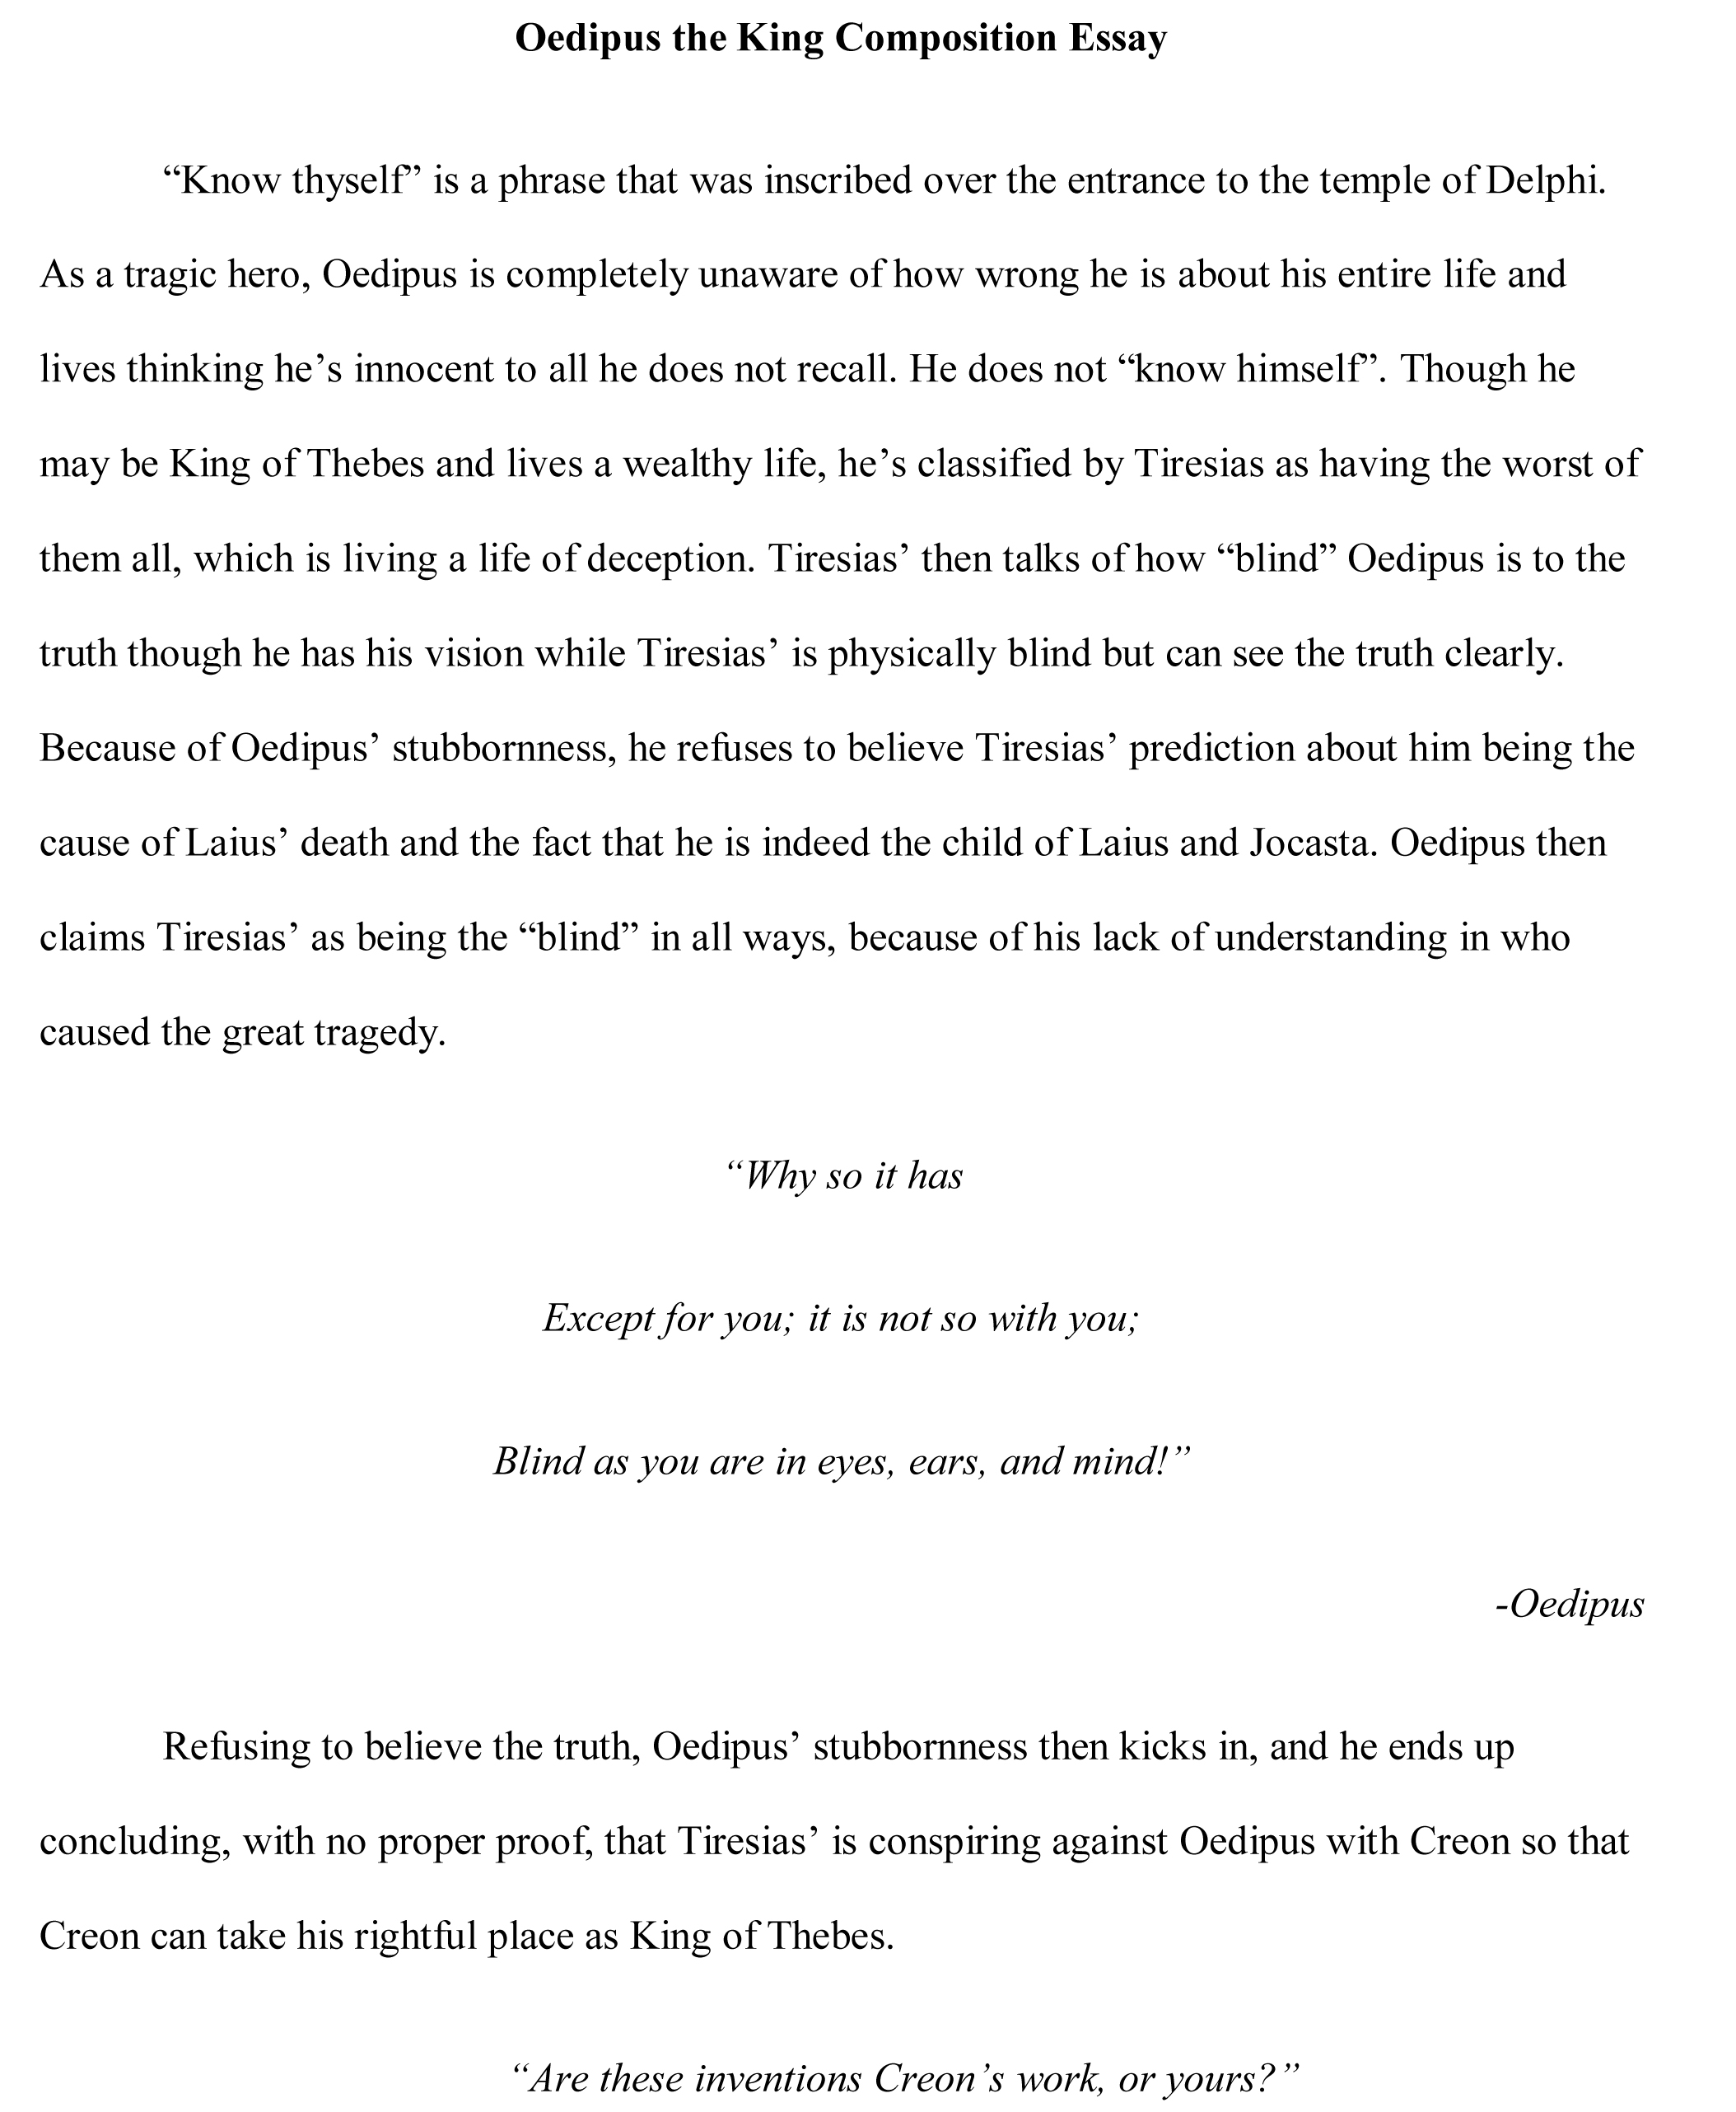 022 Oedipus Essay Free Sample How To Make Good Hook For An Outstanding A Catchy Narrative Great Full